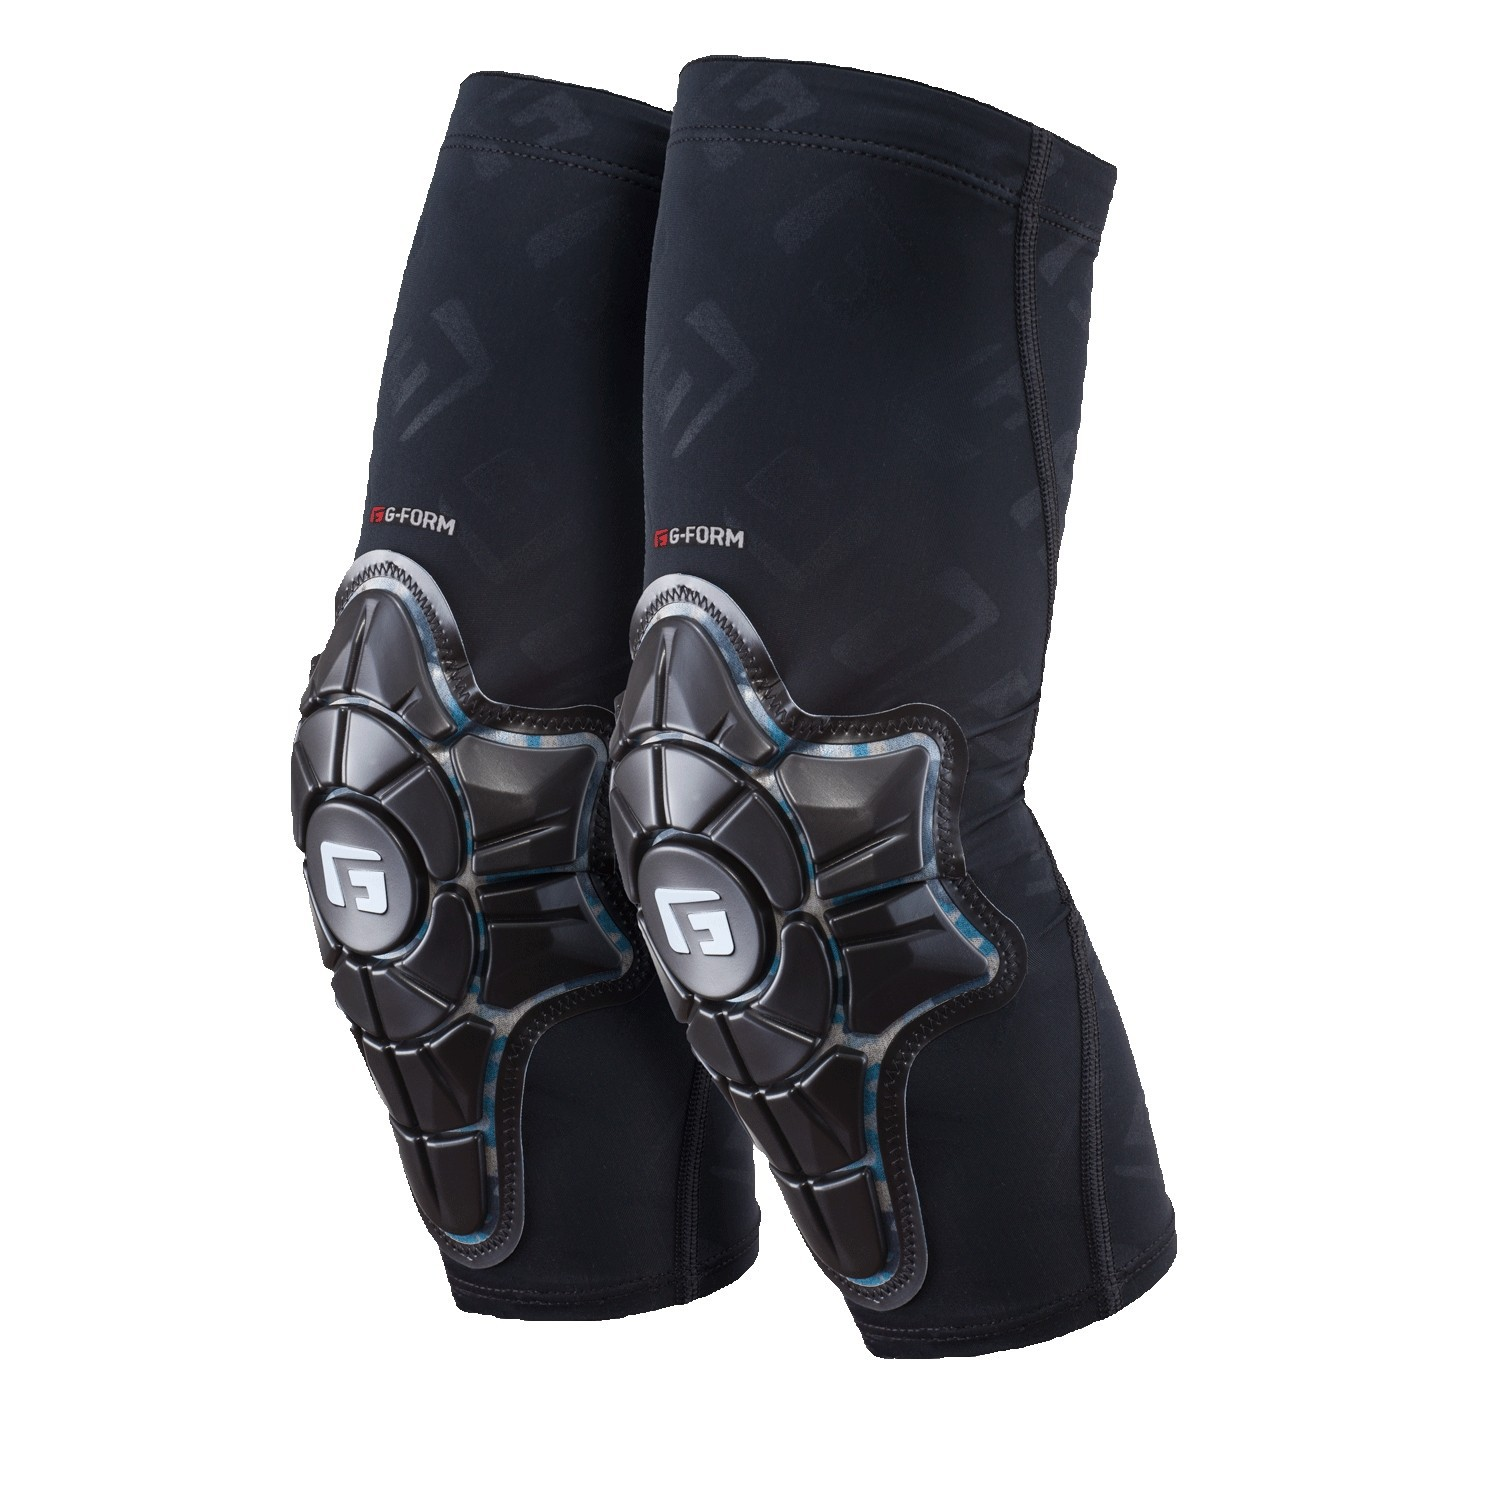 G-FORM PRO-X ELBOW PADS YOUTH BLACK / TEAL CAMO